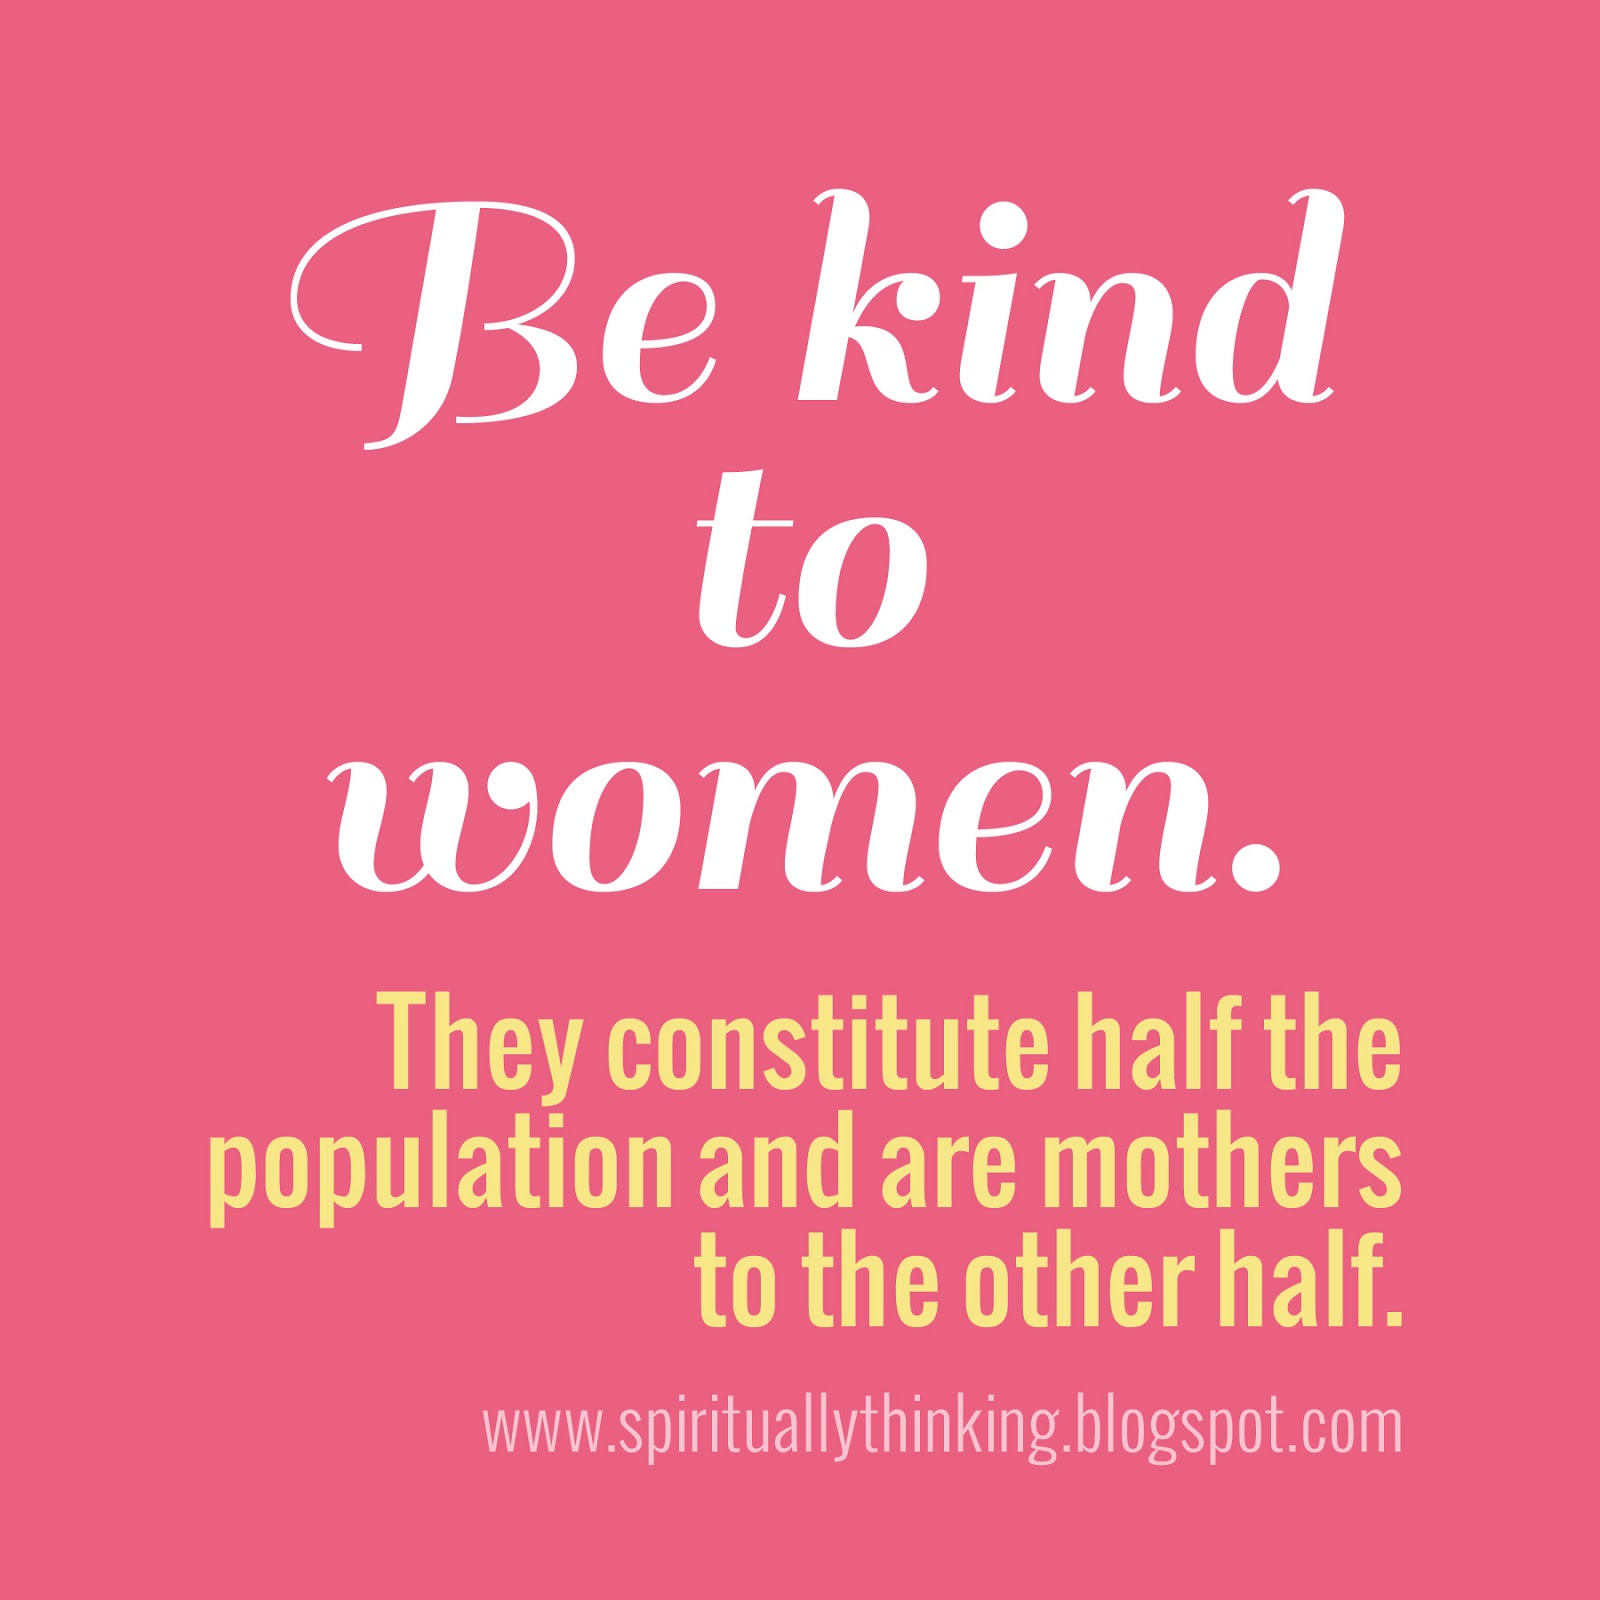 Quotes On Women And Spiritually Speaking Be Kind To Women  Happy Mother's Day